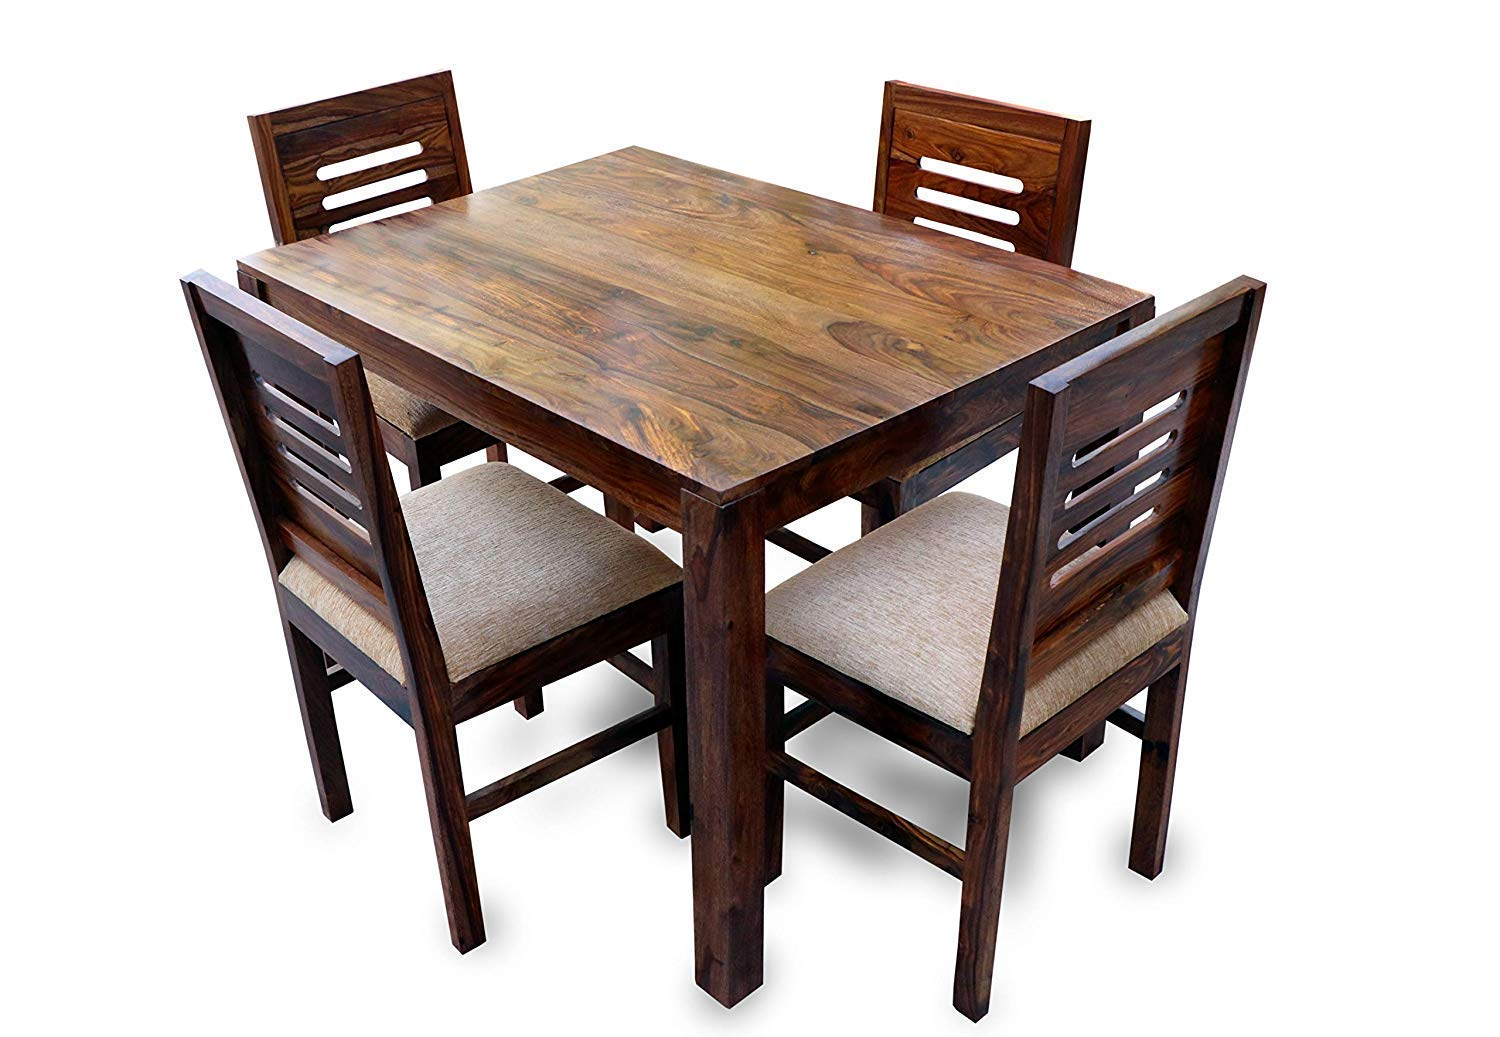 Dream Decor Square Dining Table Set 4 Seater With 4 Chairs Dining Table Set Home Dining Room Furniture Natural Teak Amazon In Home Kitchen